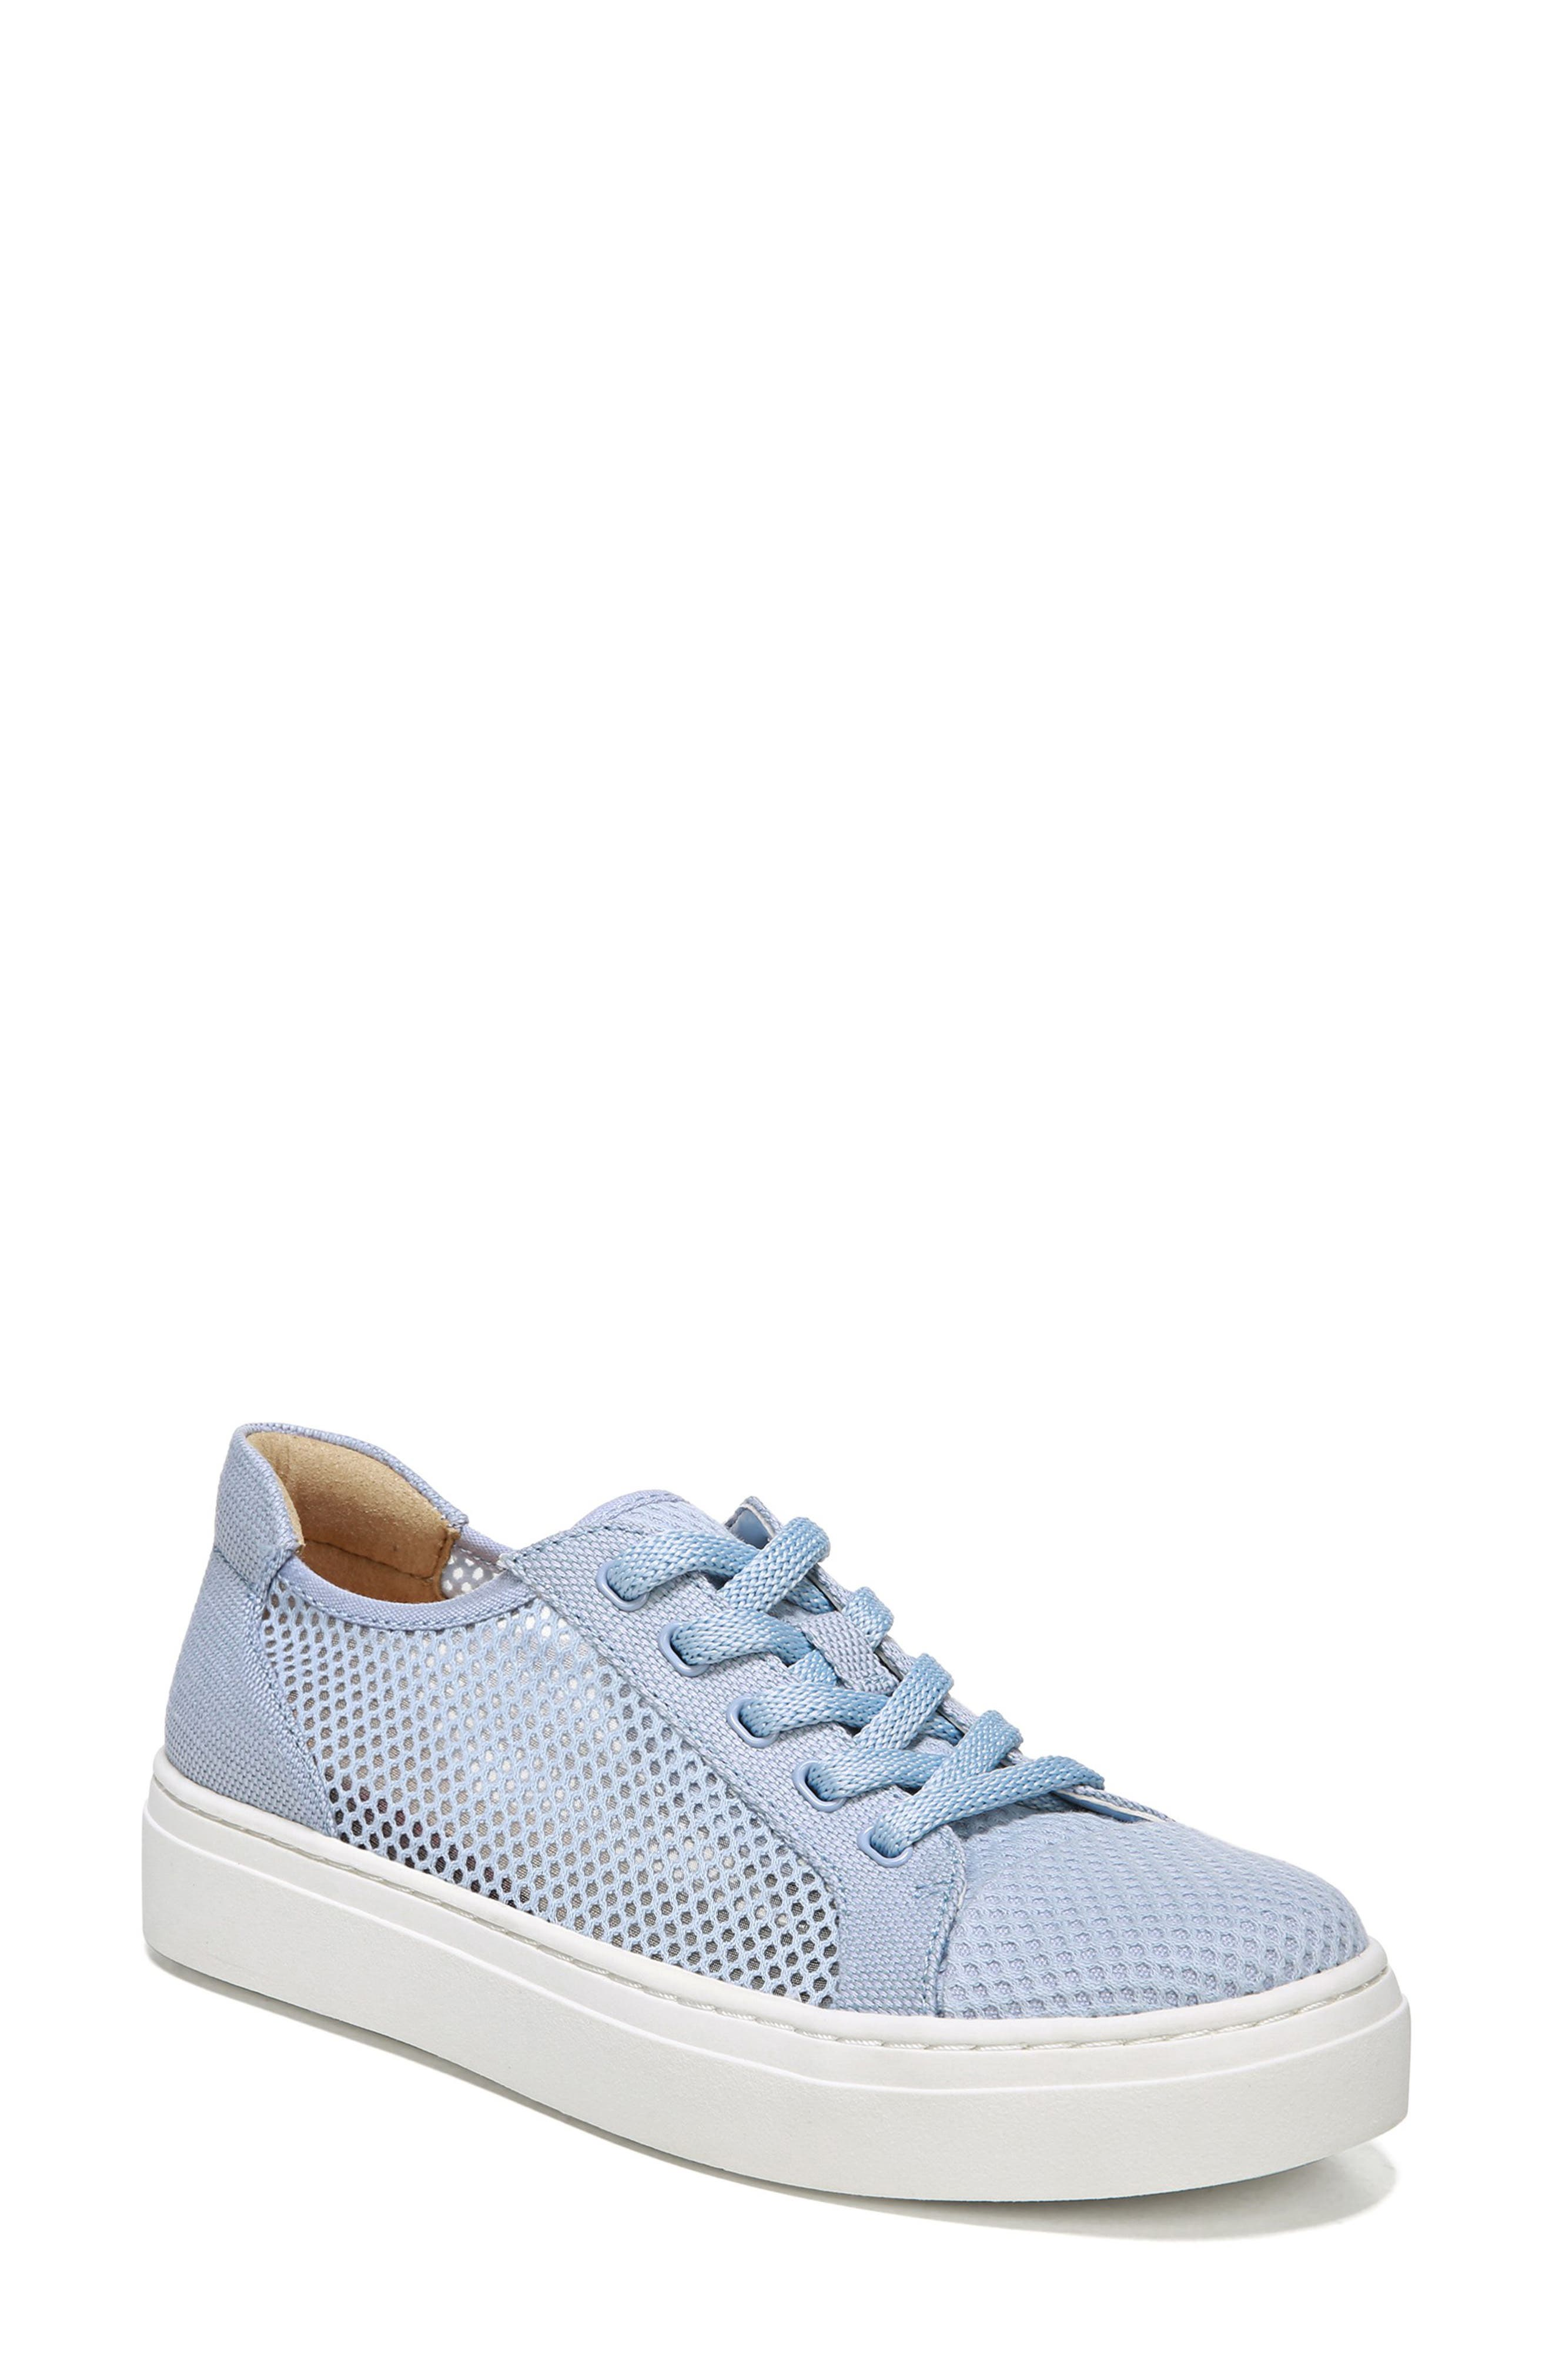 Naturalizer Cairo Sneaker, Blue